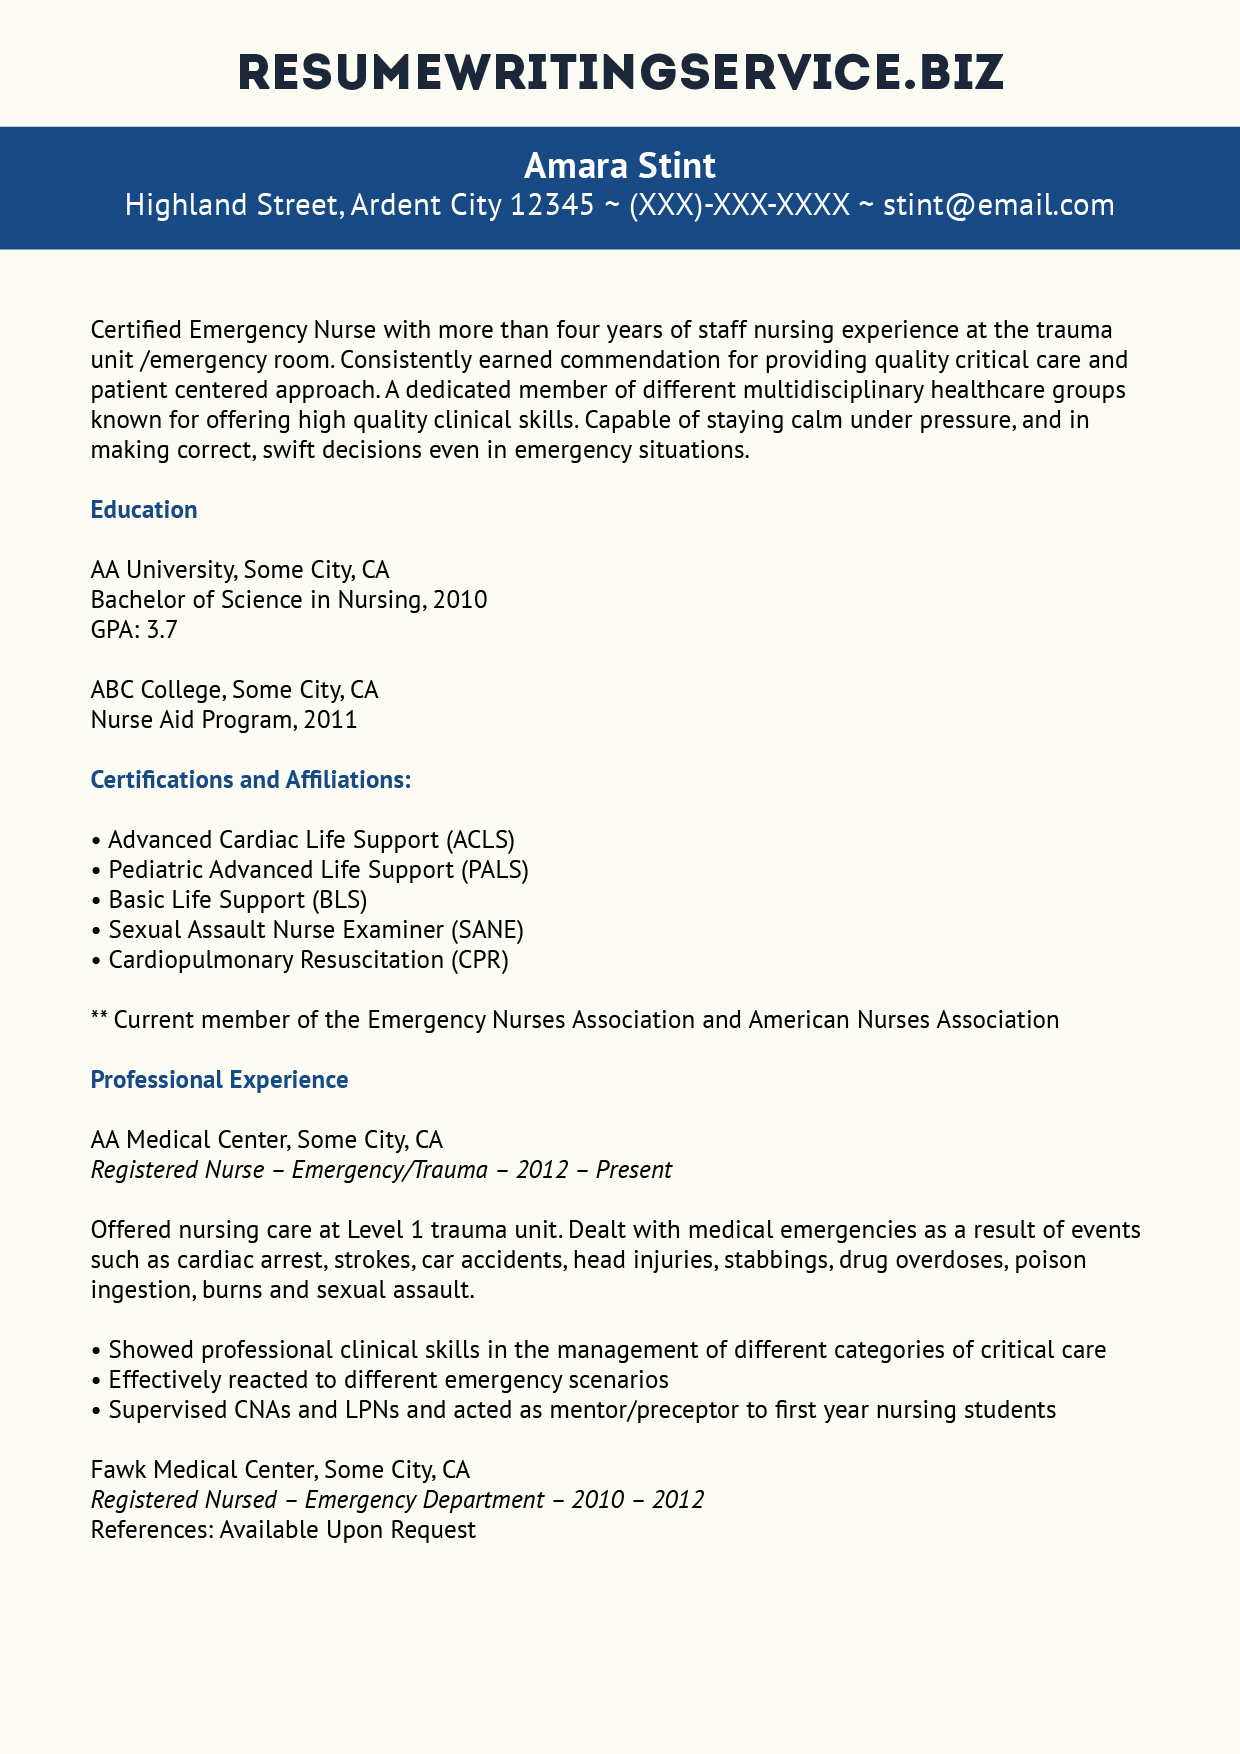 nursing resume qut sample customer service resume nursing resume qut qut careers and employment resumes care related writing services provide clarity new nursing